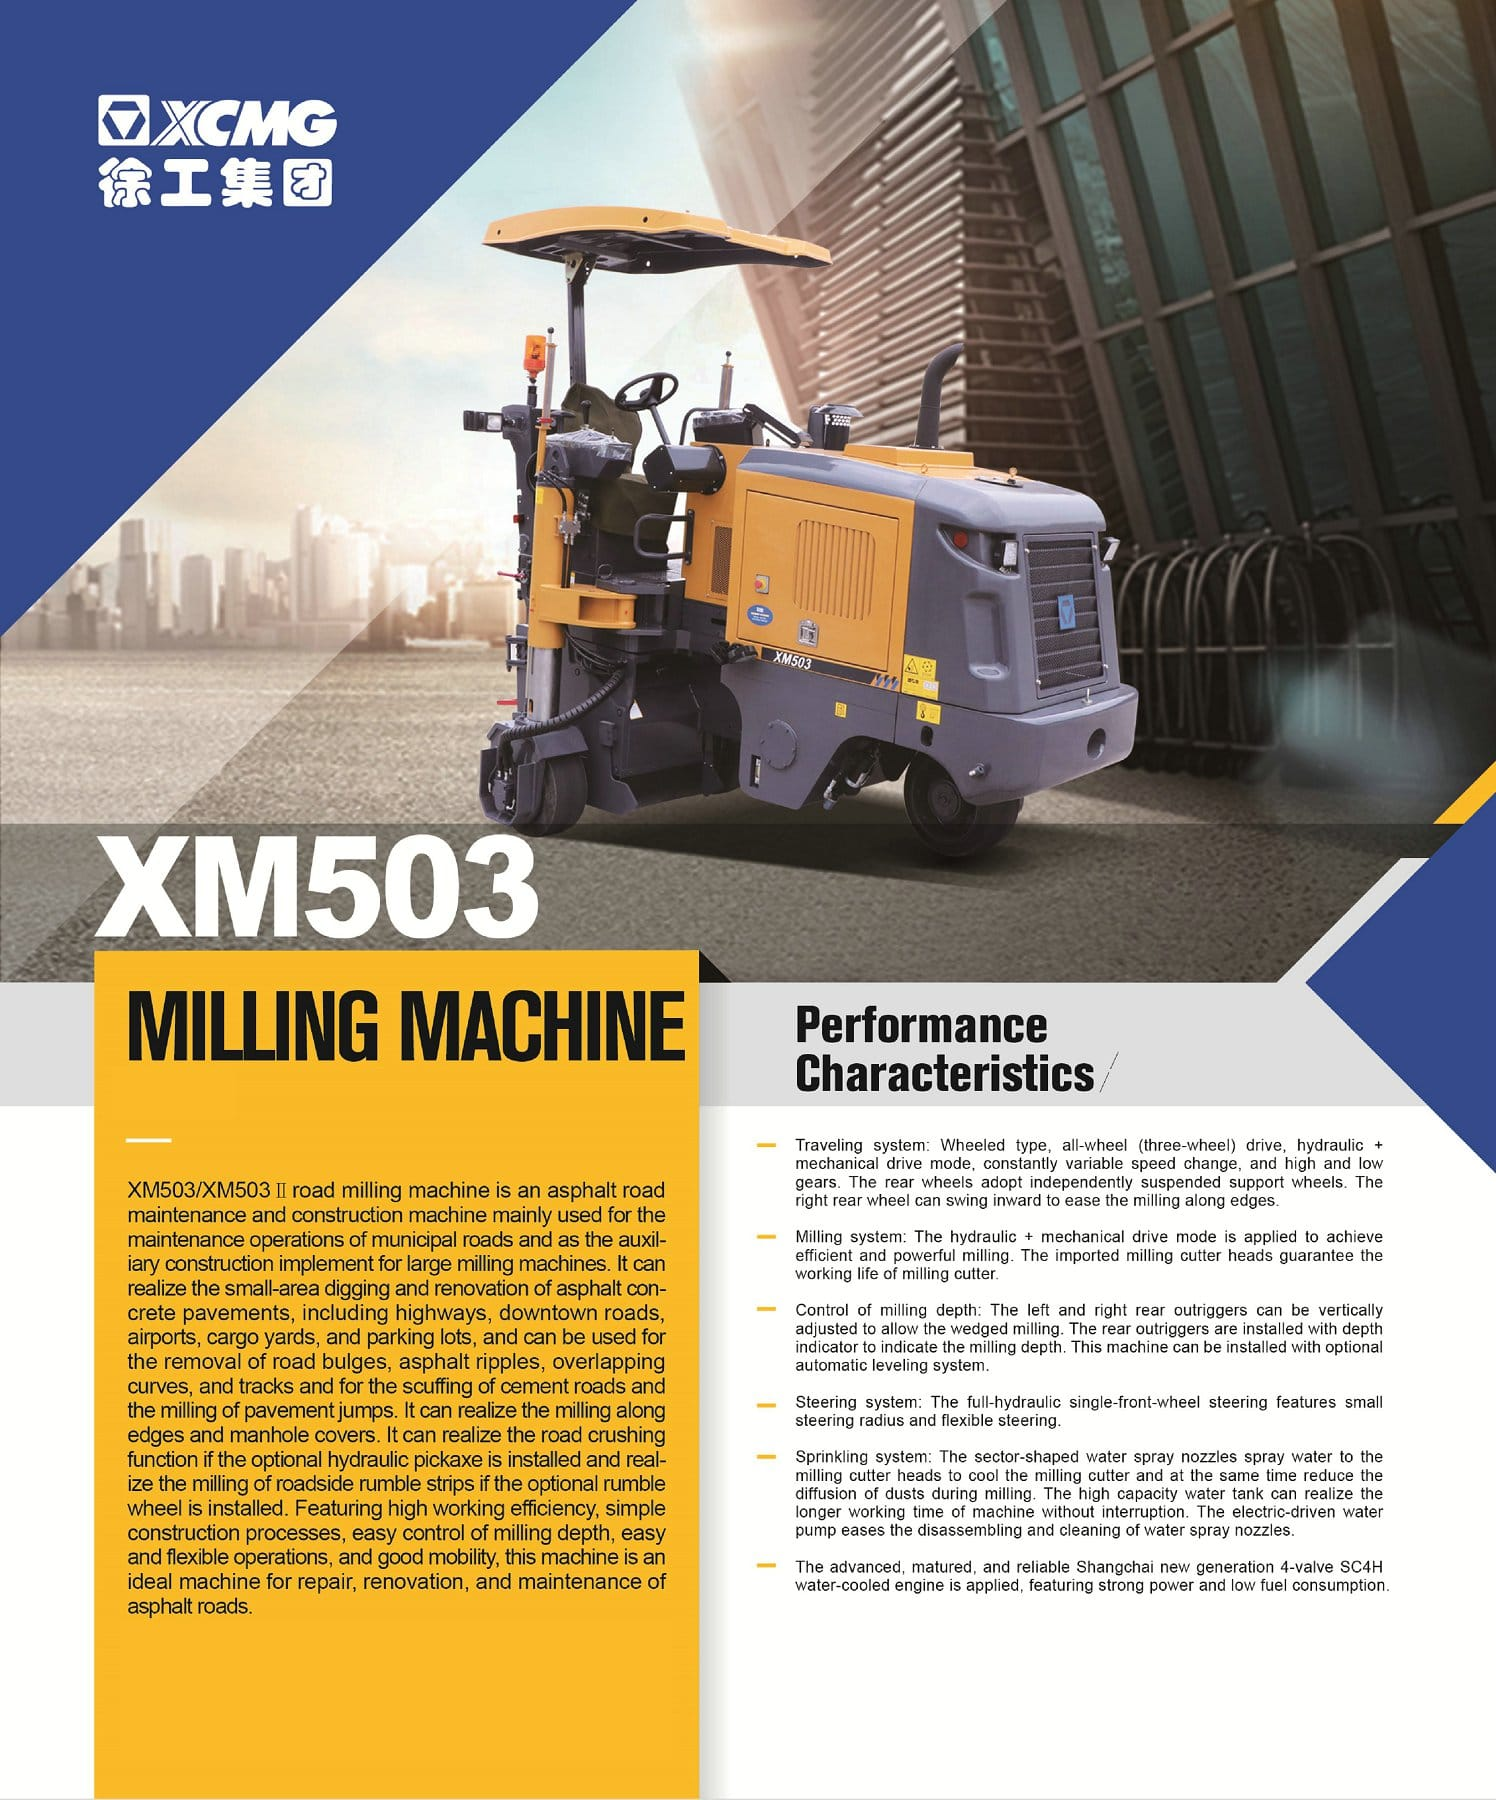 XCMG Official XM503 Milling Machine for sale